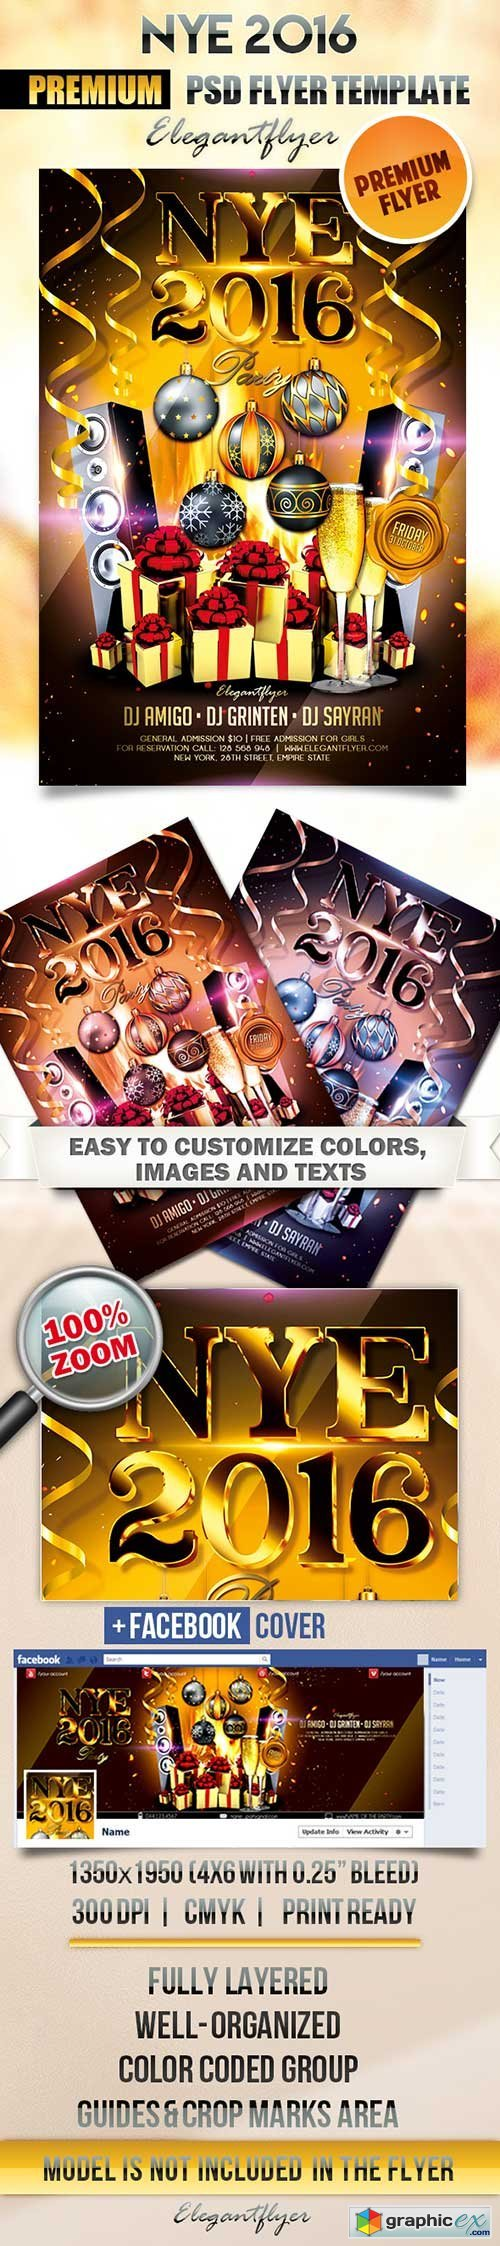 articles for november 2015 year page 102 free download vector